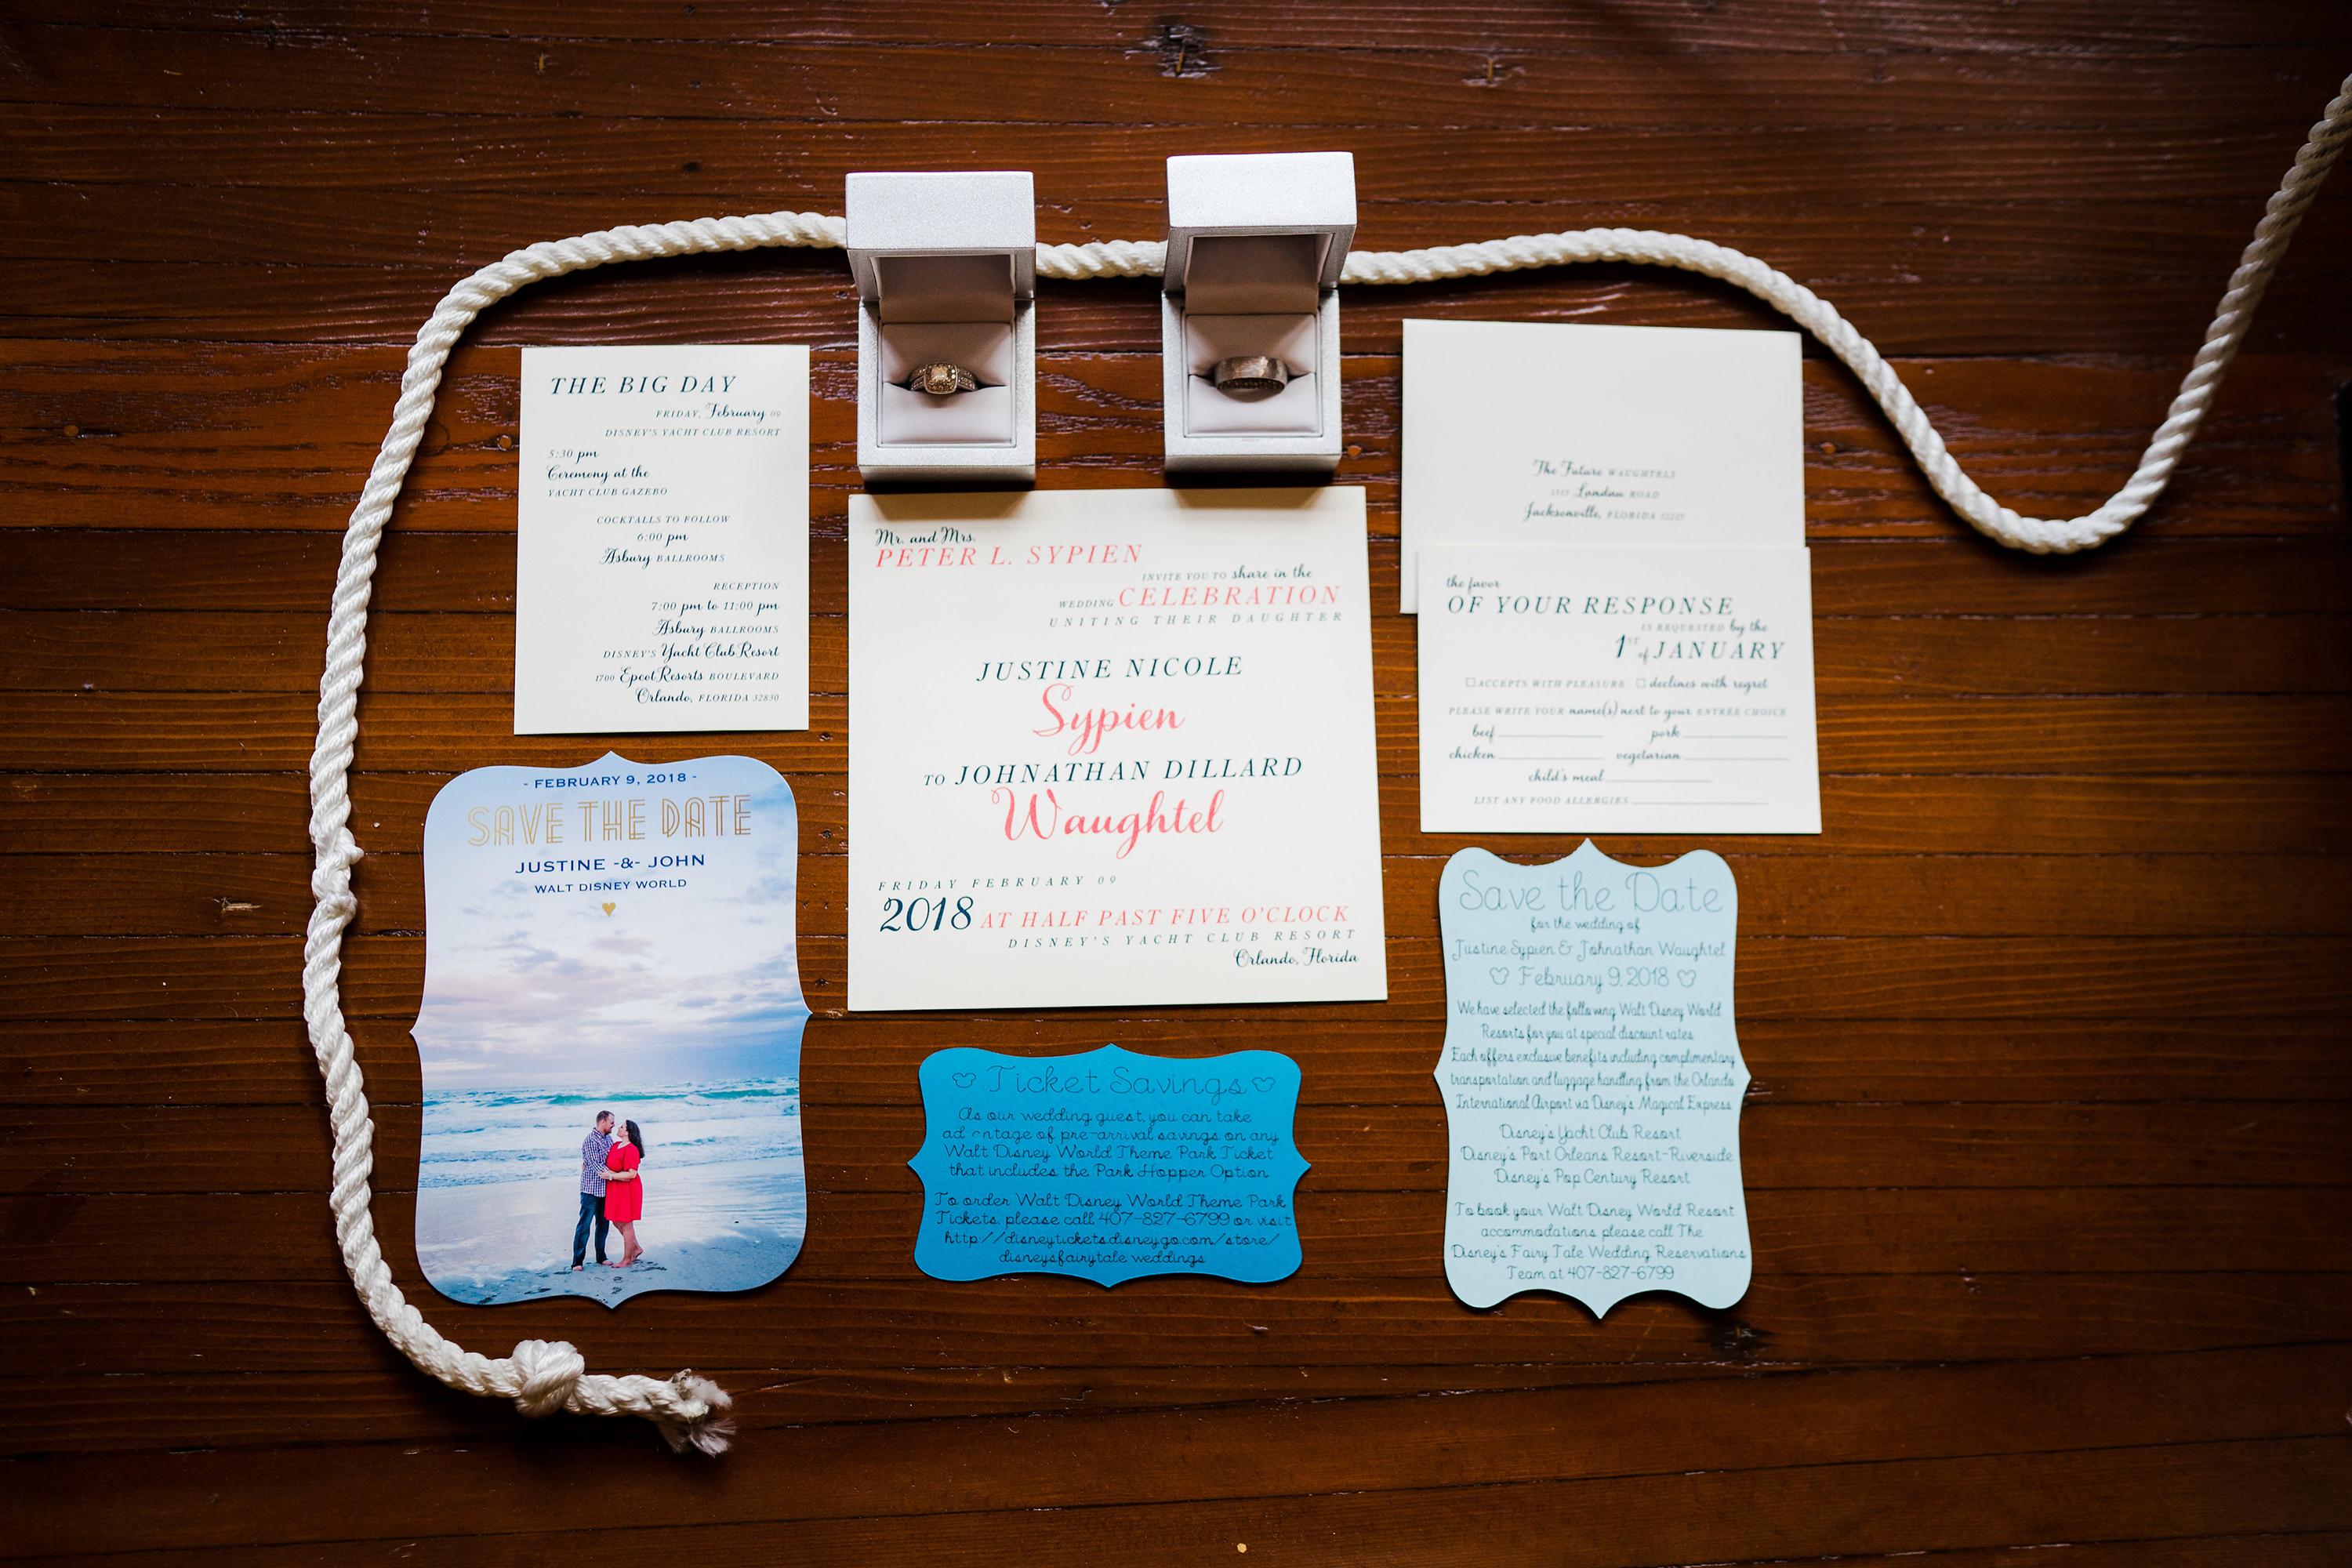 Casablacna Bridal | Wedding Invitations